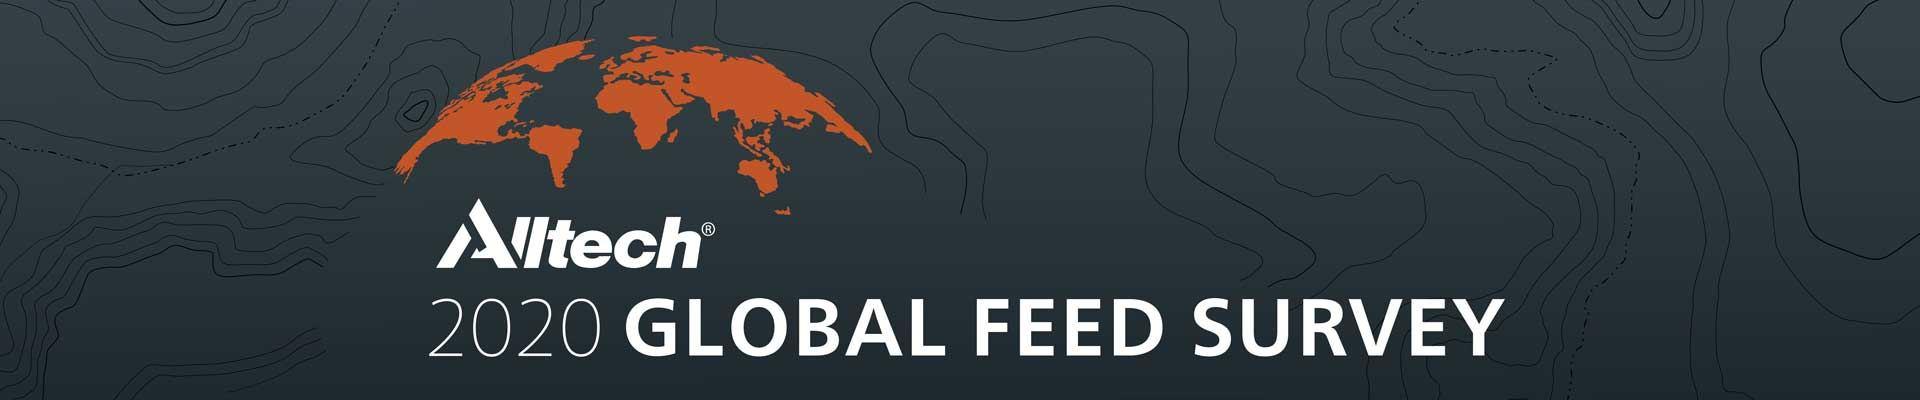 Alltech 2020 Global Feed Survey header image